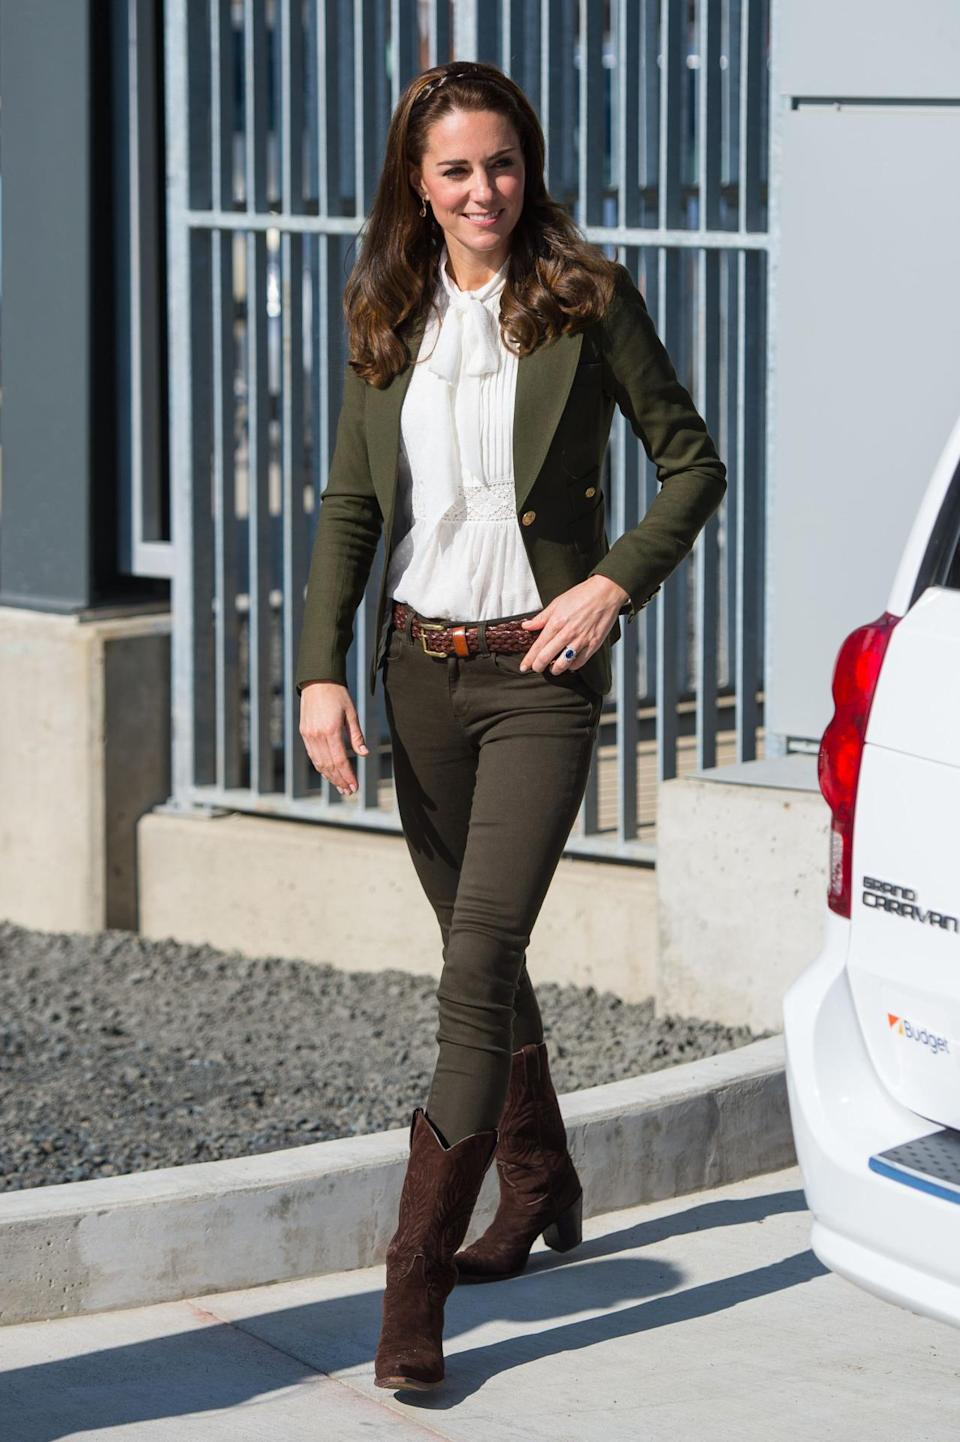 """<p>For a canoe trip, Kate wore an army green blazer by Toronto-based brand, Smythe Les Vests. She paired it with a white lacy blouse designed by Alice Temperley for John Lewis. It costs £79 and is <a rel=""""nofollow noopener"""" href=""""http://www.johnlewis.com/somerset-by-alice-temperley-spot-pretty-blouse/p2891104?colour=Ivory#media-overlay_show&s_afcid=af_136348&awc=1203_1475312729_814bd43227fc7bed5aca3a86c46d9873"""" target=""""_blank"""" data-ylk=""""slk:still available online"""" class=""""link rapid-noclick-resp"""">still available online</a> - but hurry. The rest of her outfit consisted of Zara jeans and suede cowboy boots from R Soles. </p><p><i>[Photo: PA]</i></p>"""